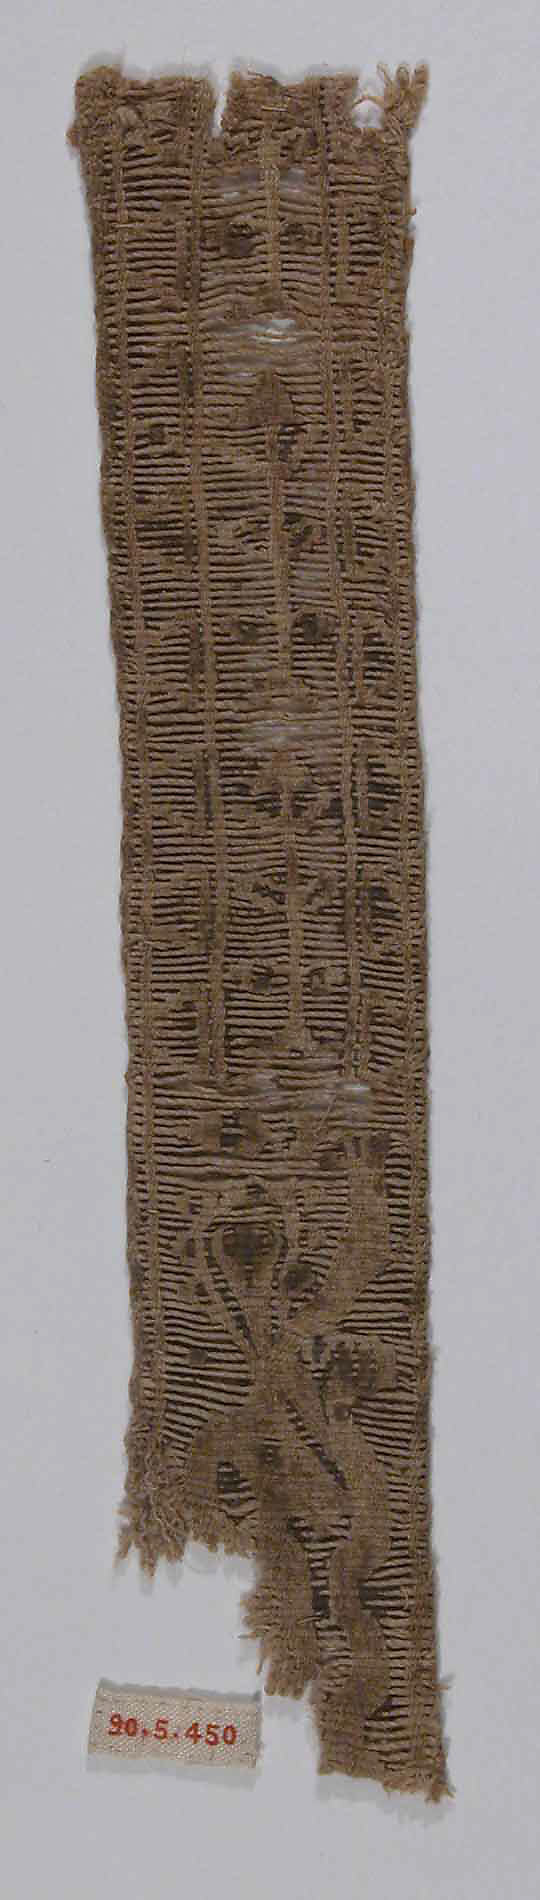 Fragment of Shoulder Band